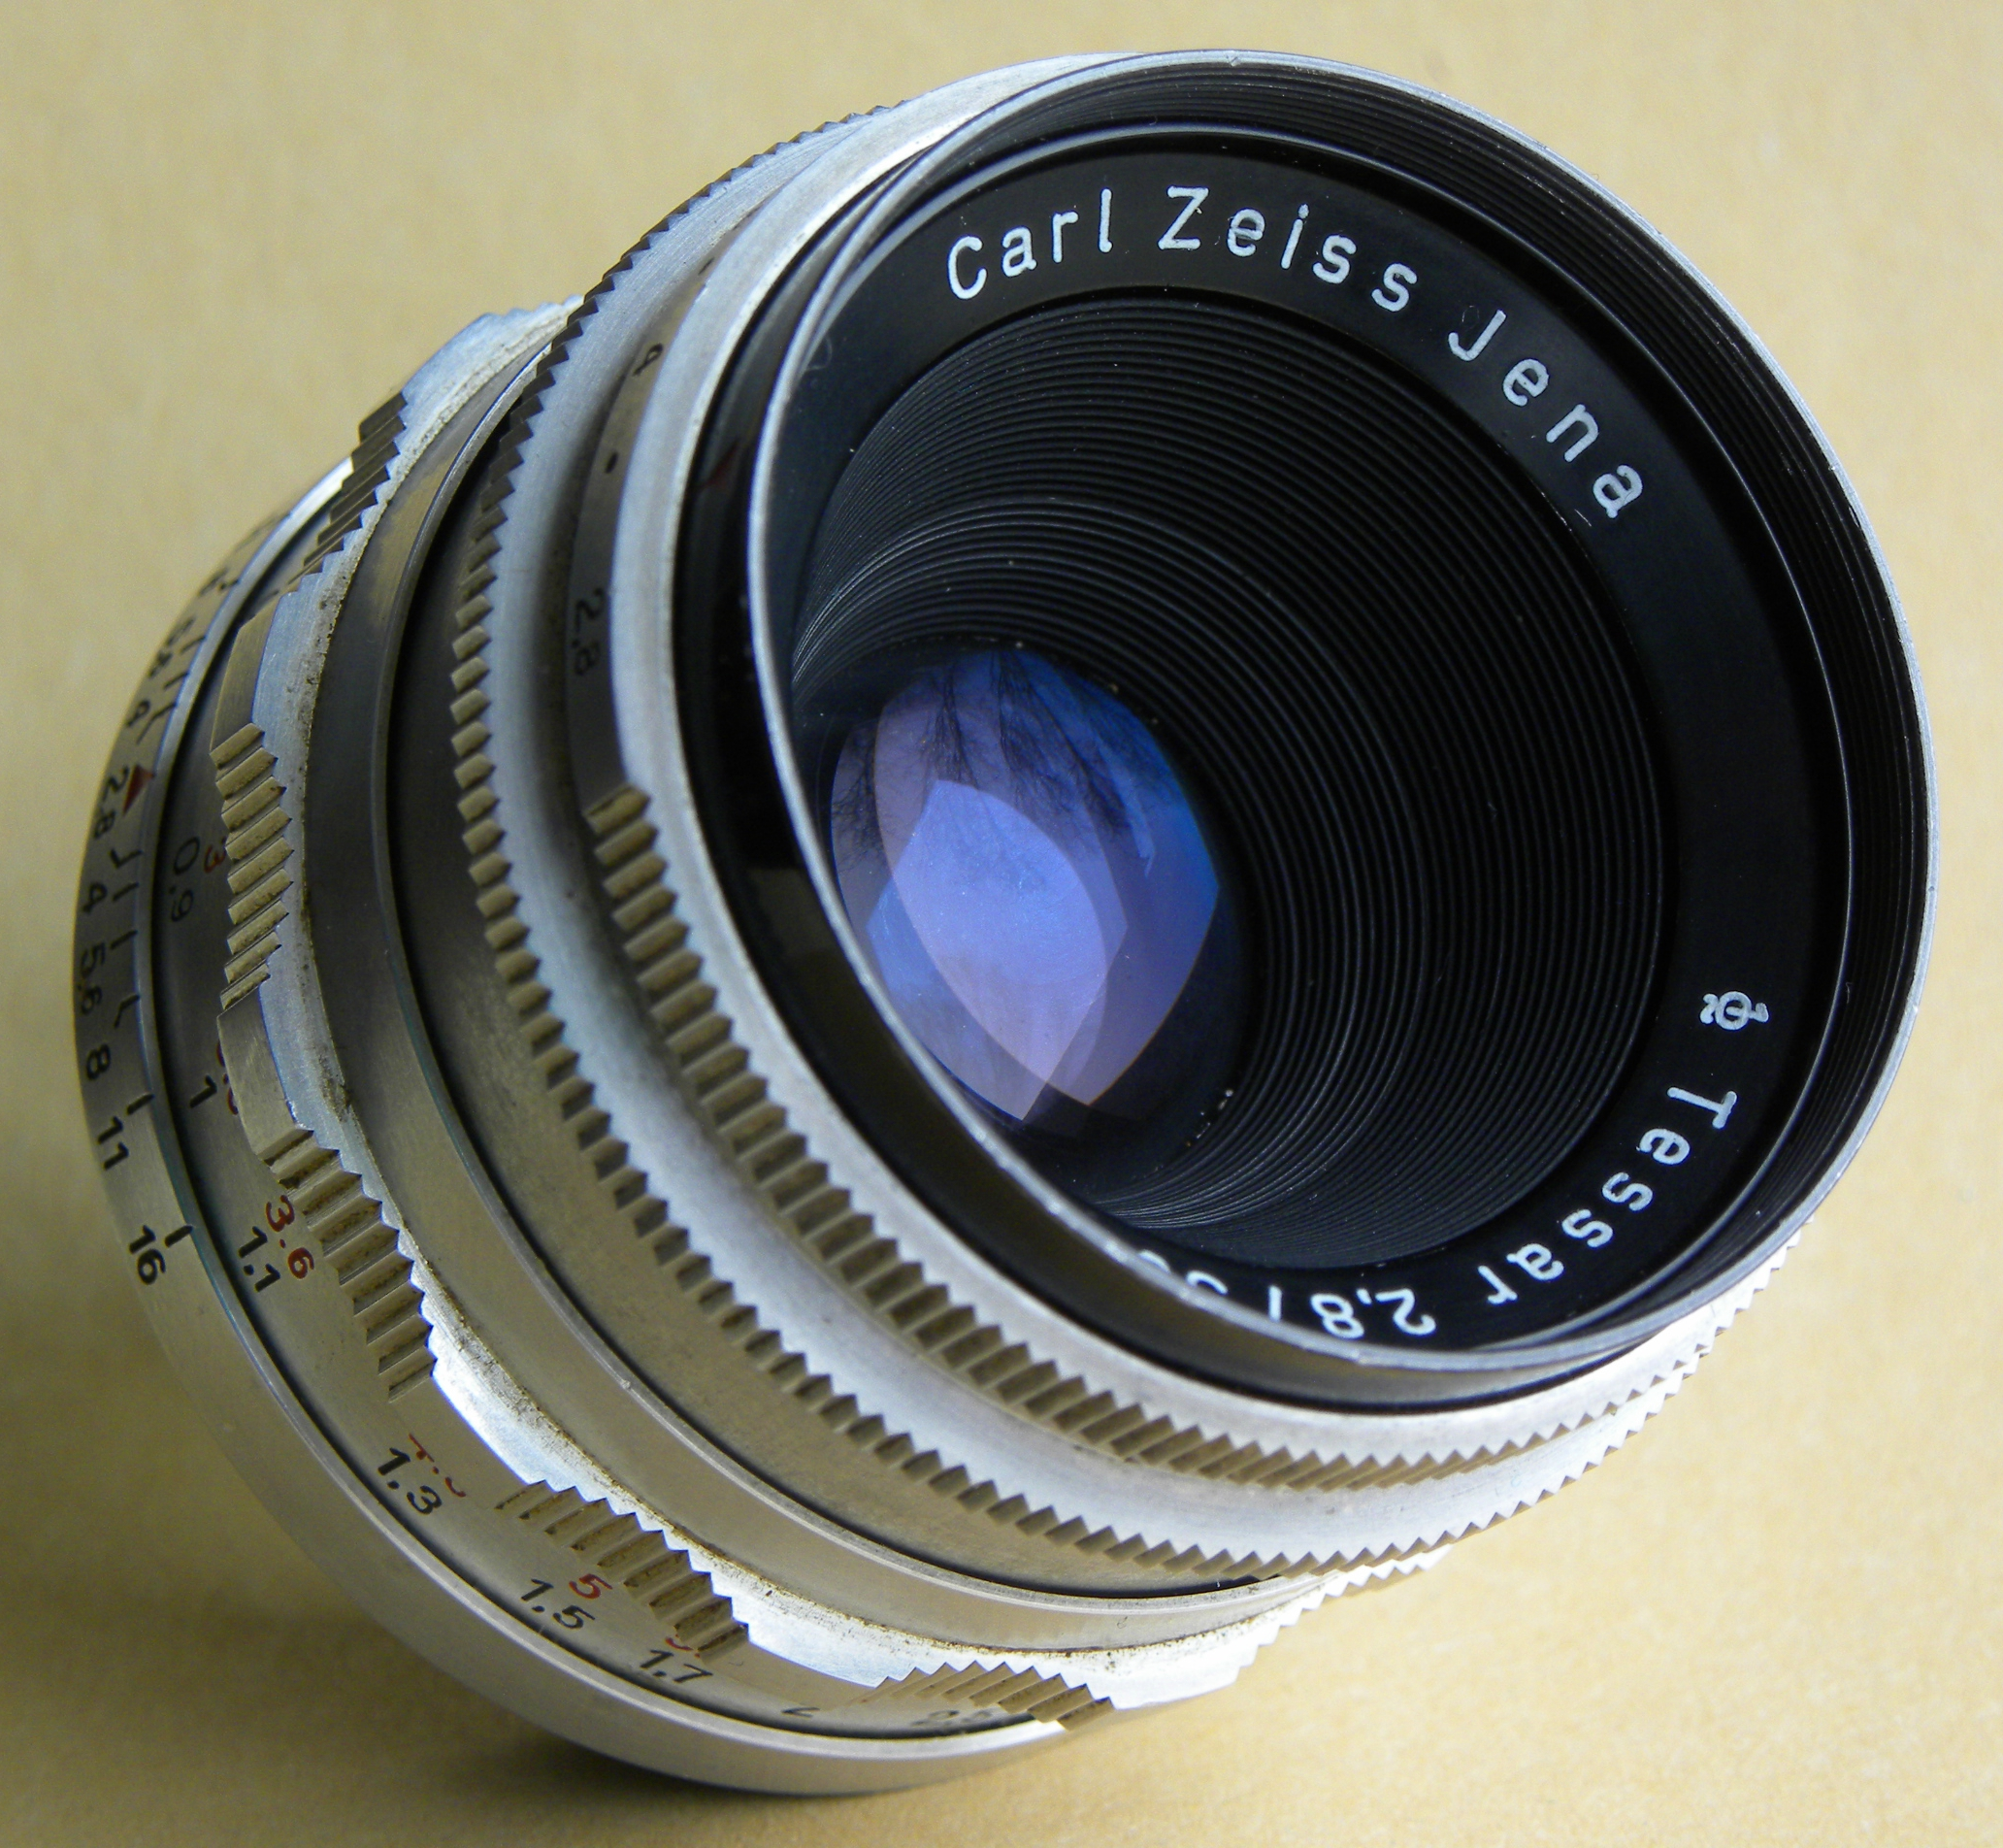 carl zeiss lens dating Date of manufacture and quality of carl zeiss jena tessar 45/300 that lens was made in the late 1970's by zeiss jena in the gdr and is of course coated the design was by merté, from 1928.